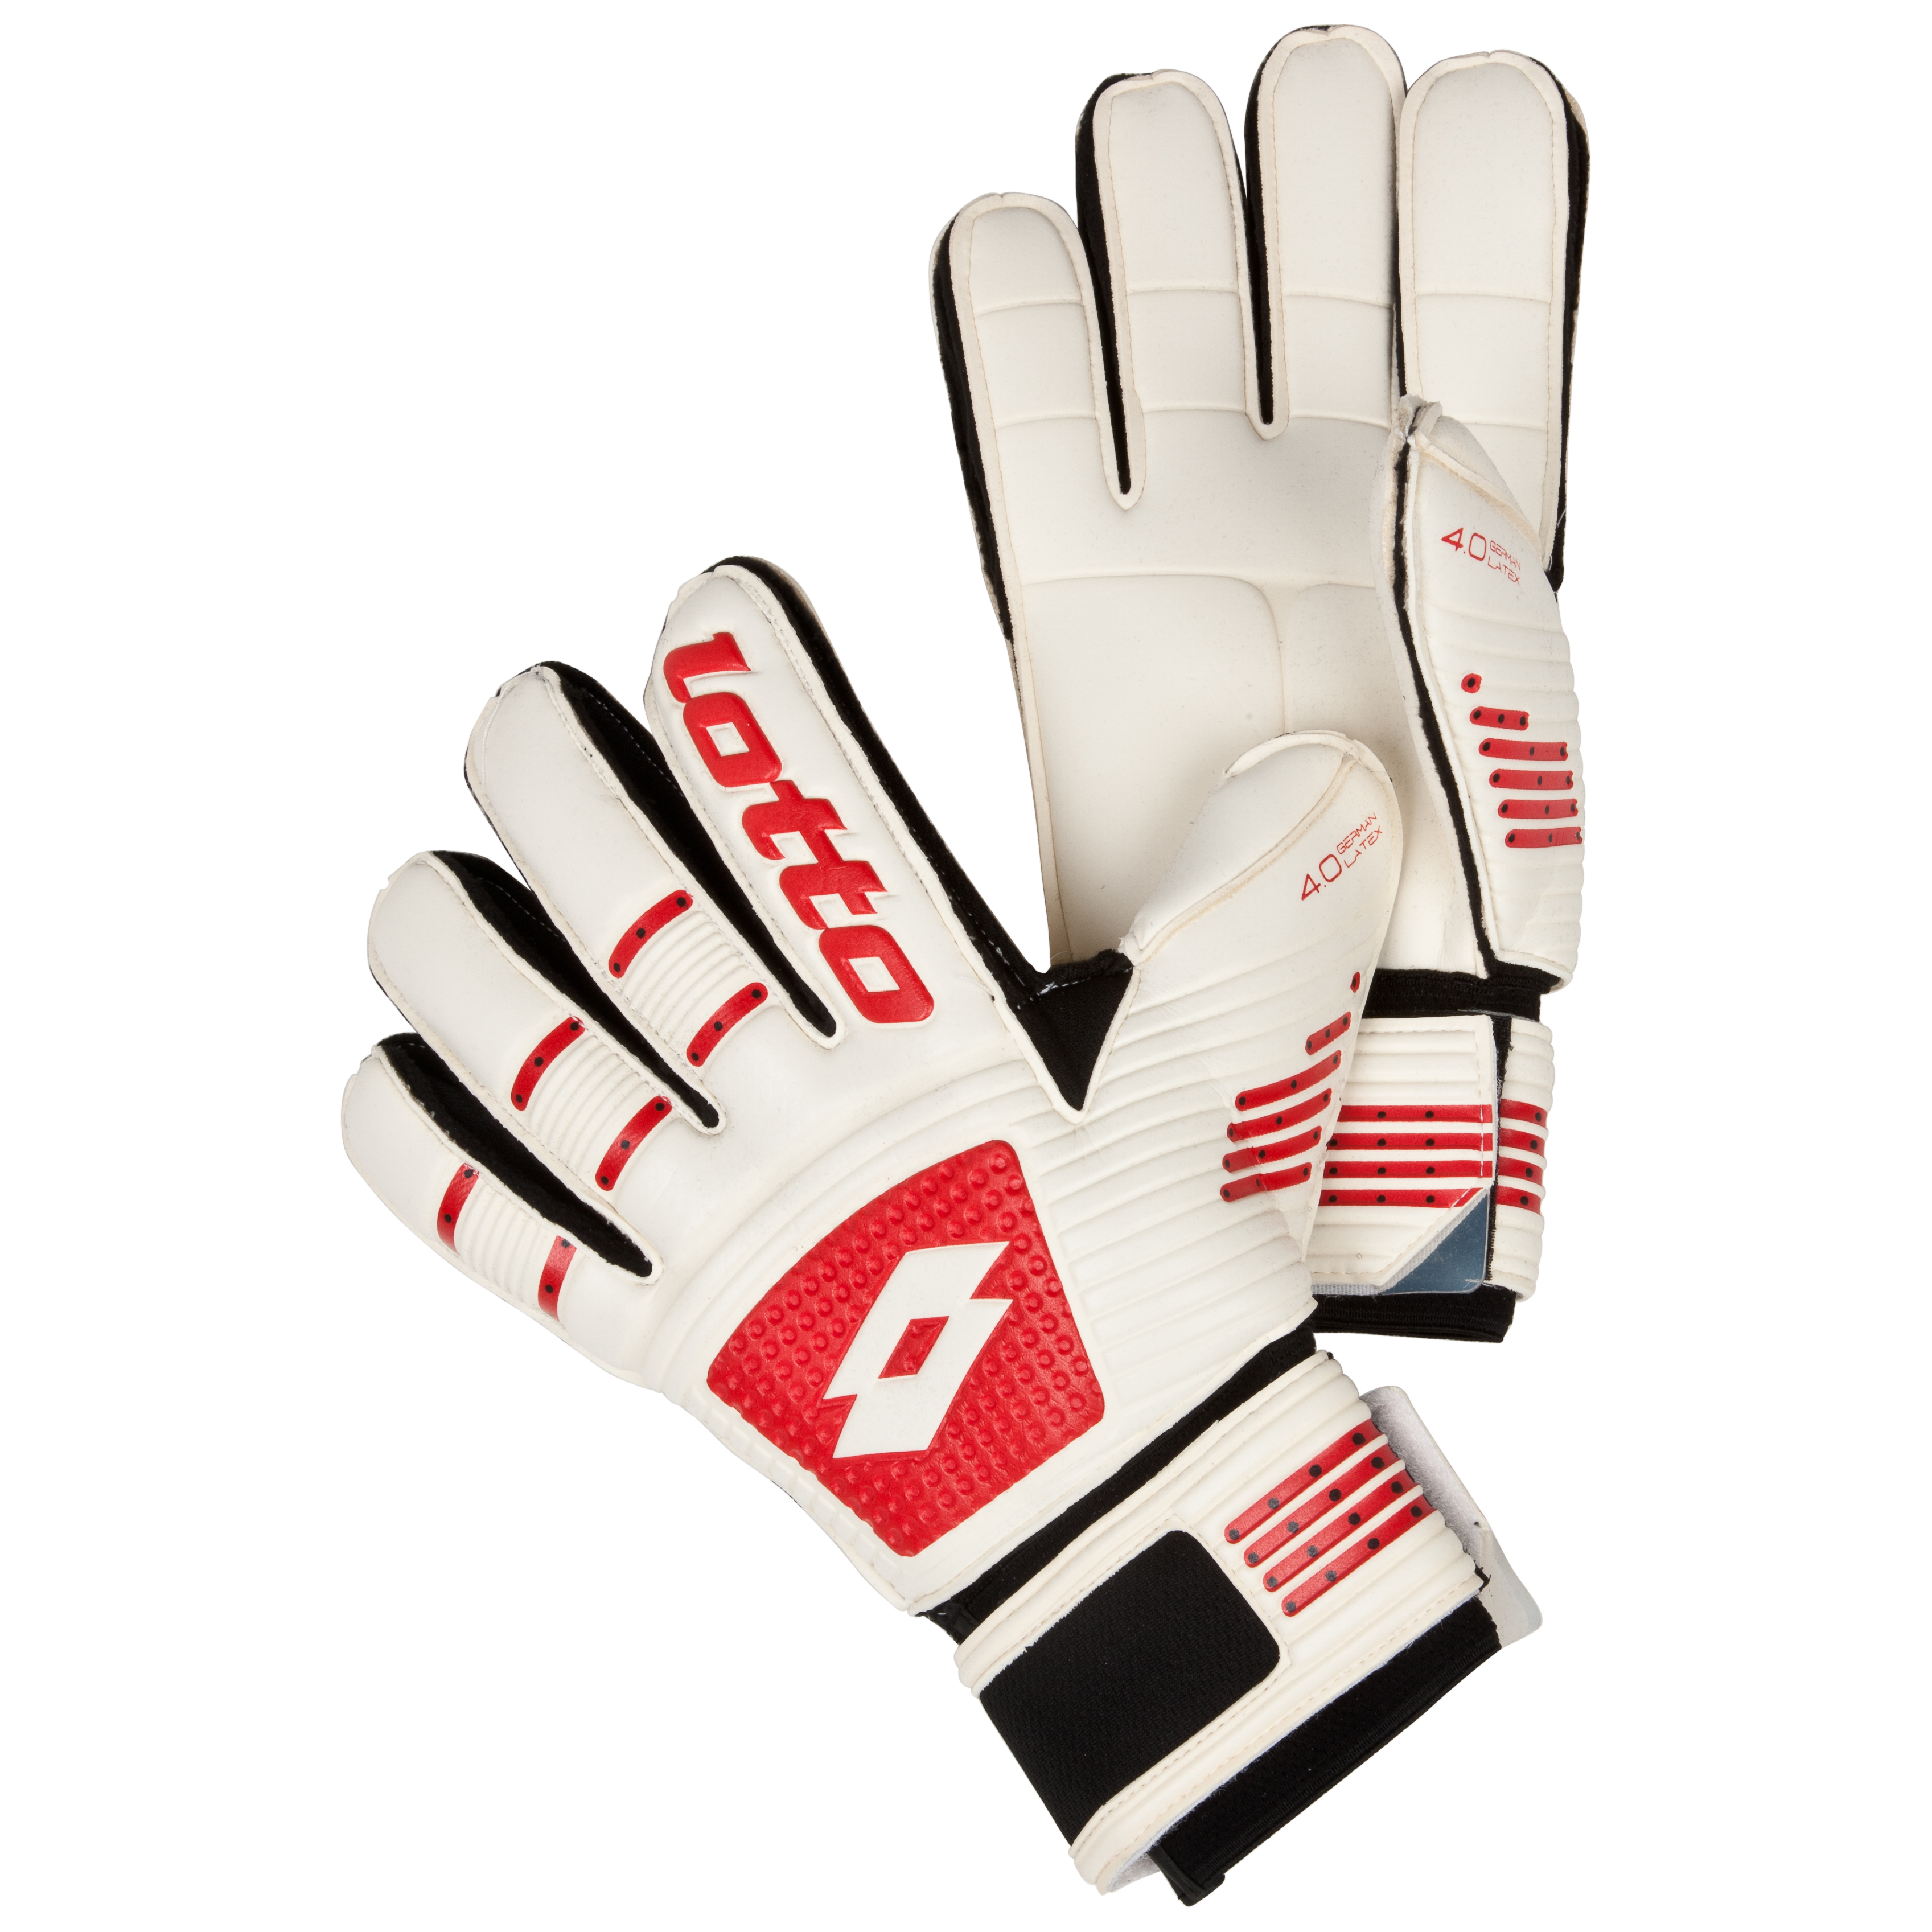 Lotto Gripster GK100 III Goalkeeper Gloves-White/Risk Red